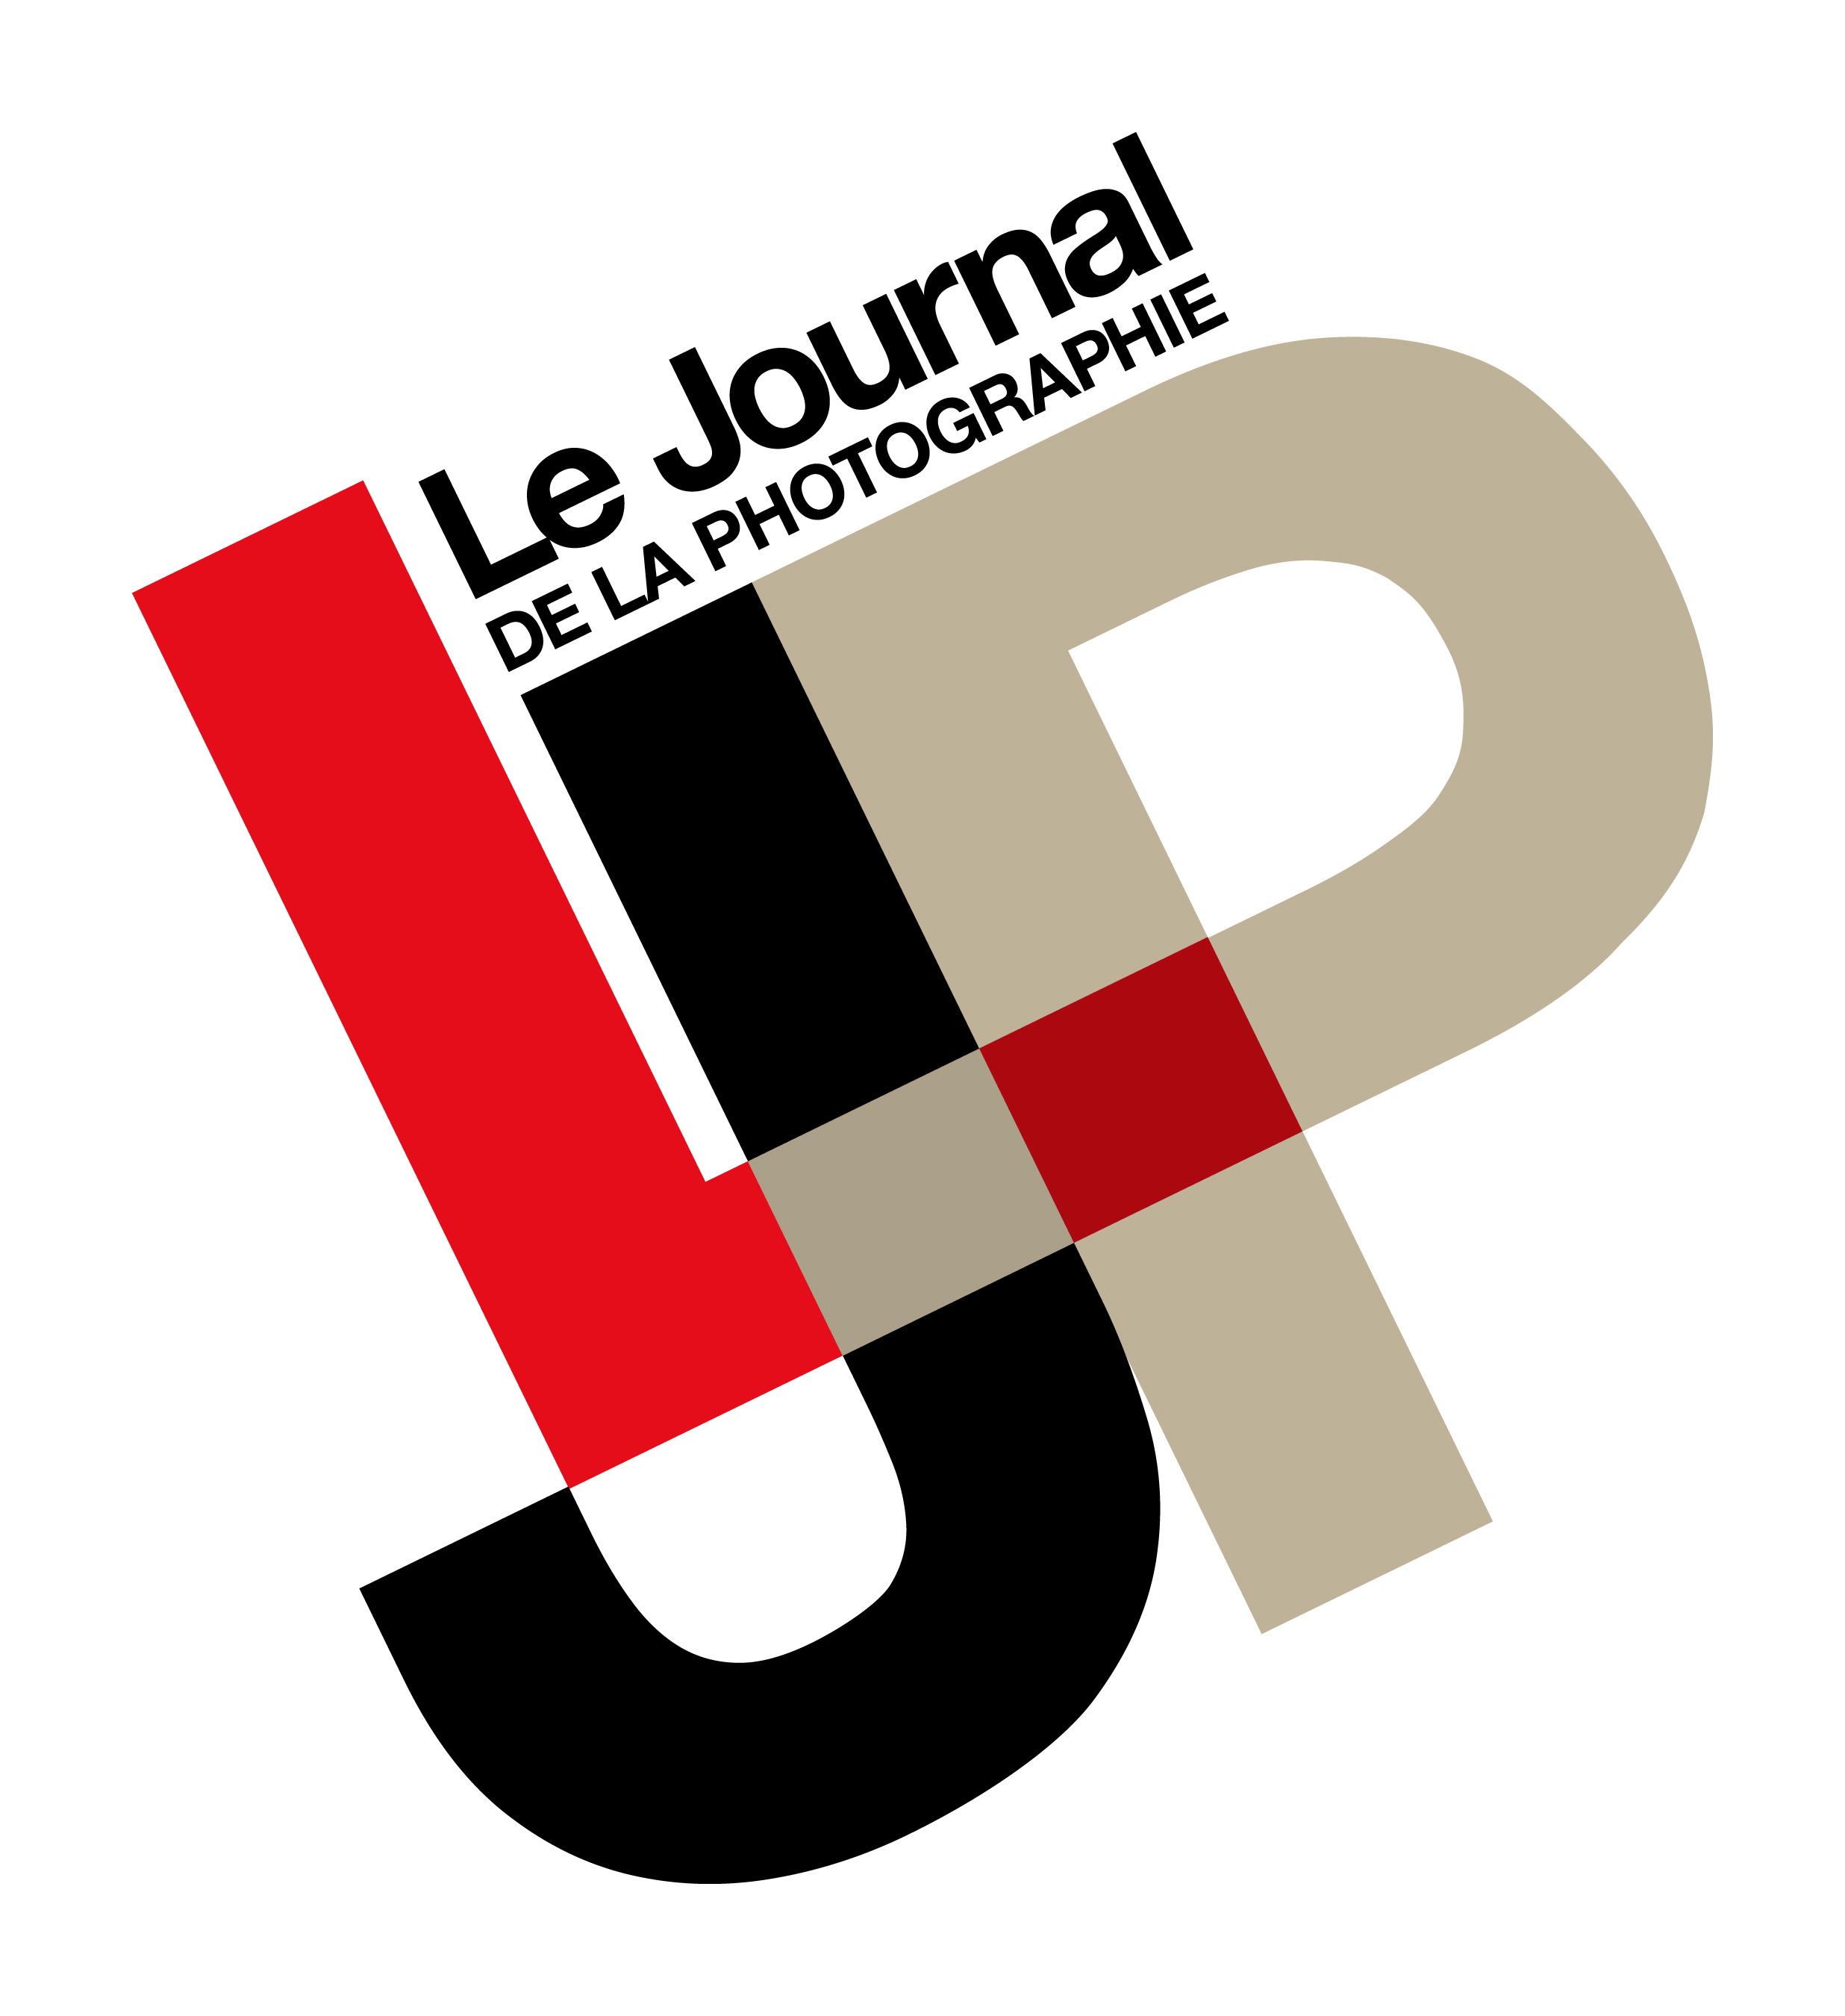 Le+Journal+de+la+Photographie-2.jpg